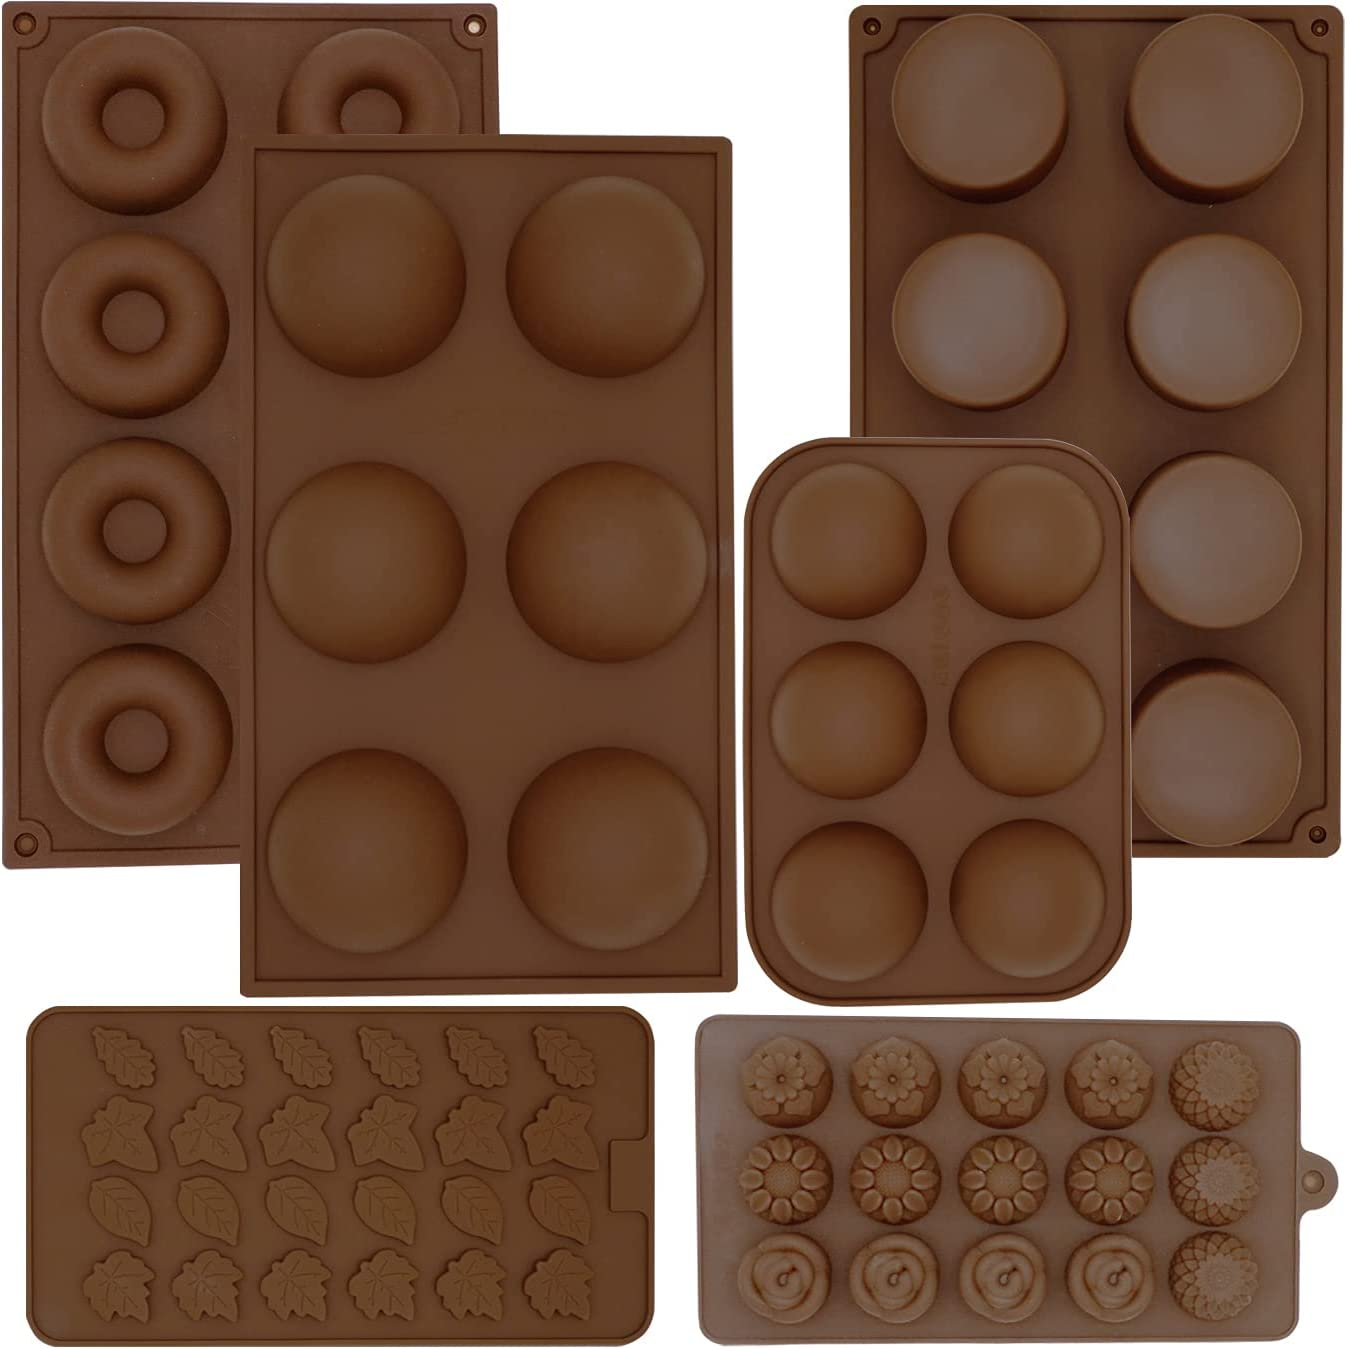 6Pcs Chocolate Molds Silicone, Chocolate Cover Hot Chocolate Bomb Mold, Round Cylinder Candy Melts Jello Mold, Edible Flower/Leaves Polymer Clay Mold for Cake Decorating, Donut Pan Cookies Baking Tool